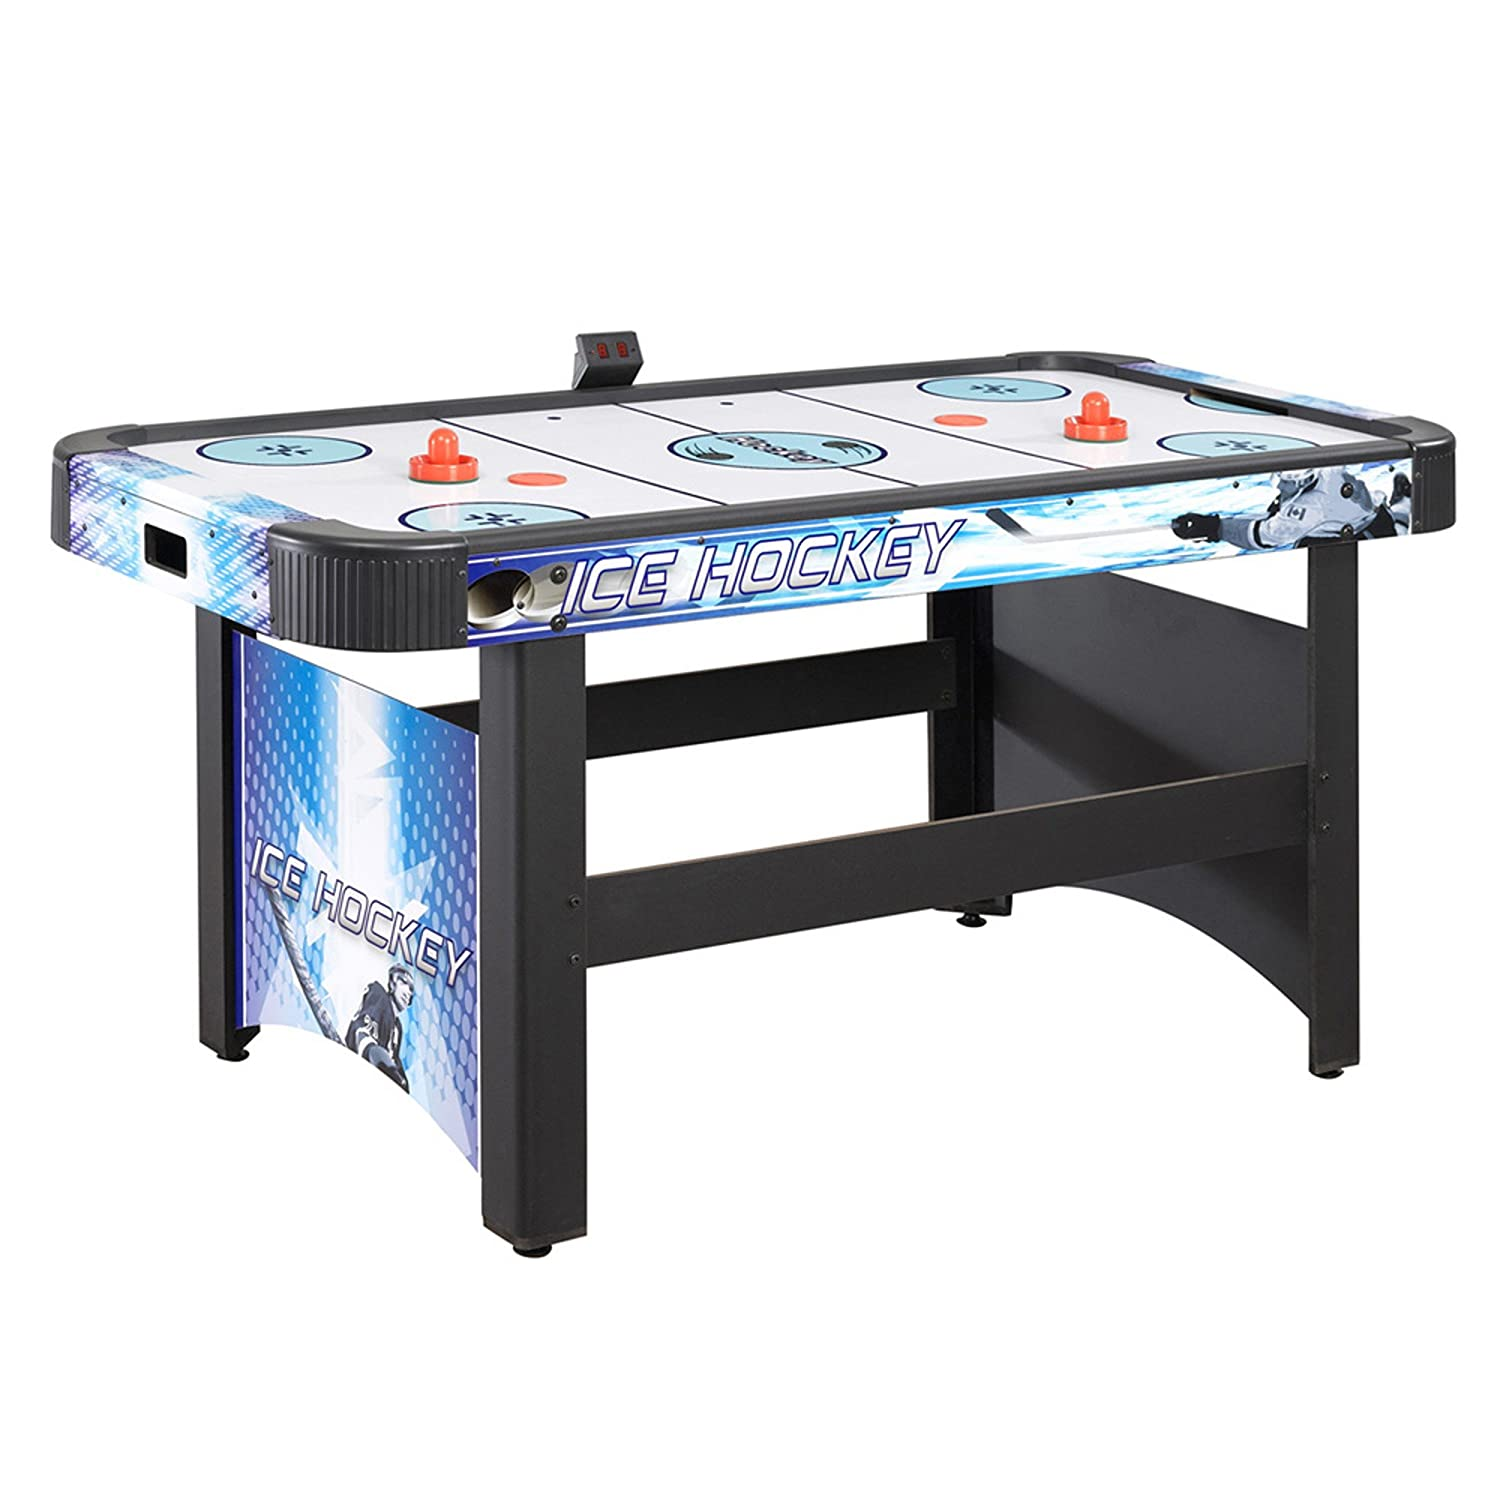 Amazon hathaway face off 5 foot air hockey game table family amazon hathaway face off 5 foot air hockey game table family game rooms electronic scoring free pucks strikers air hockey equipment sports greentooth Images